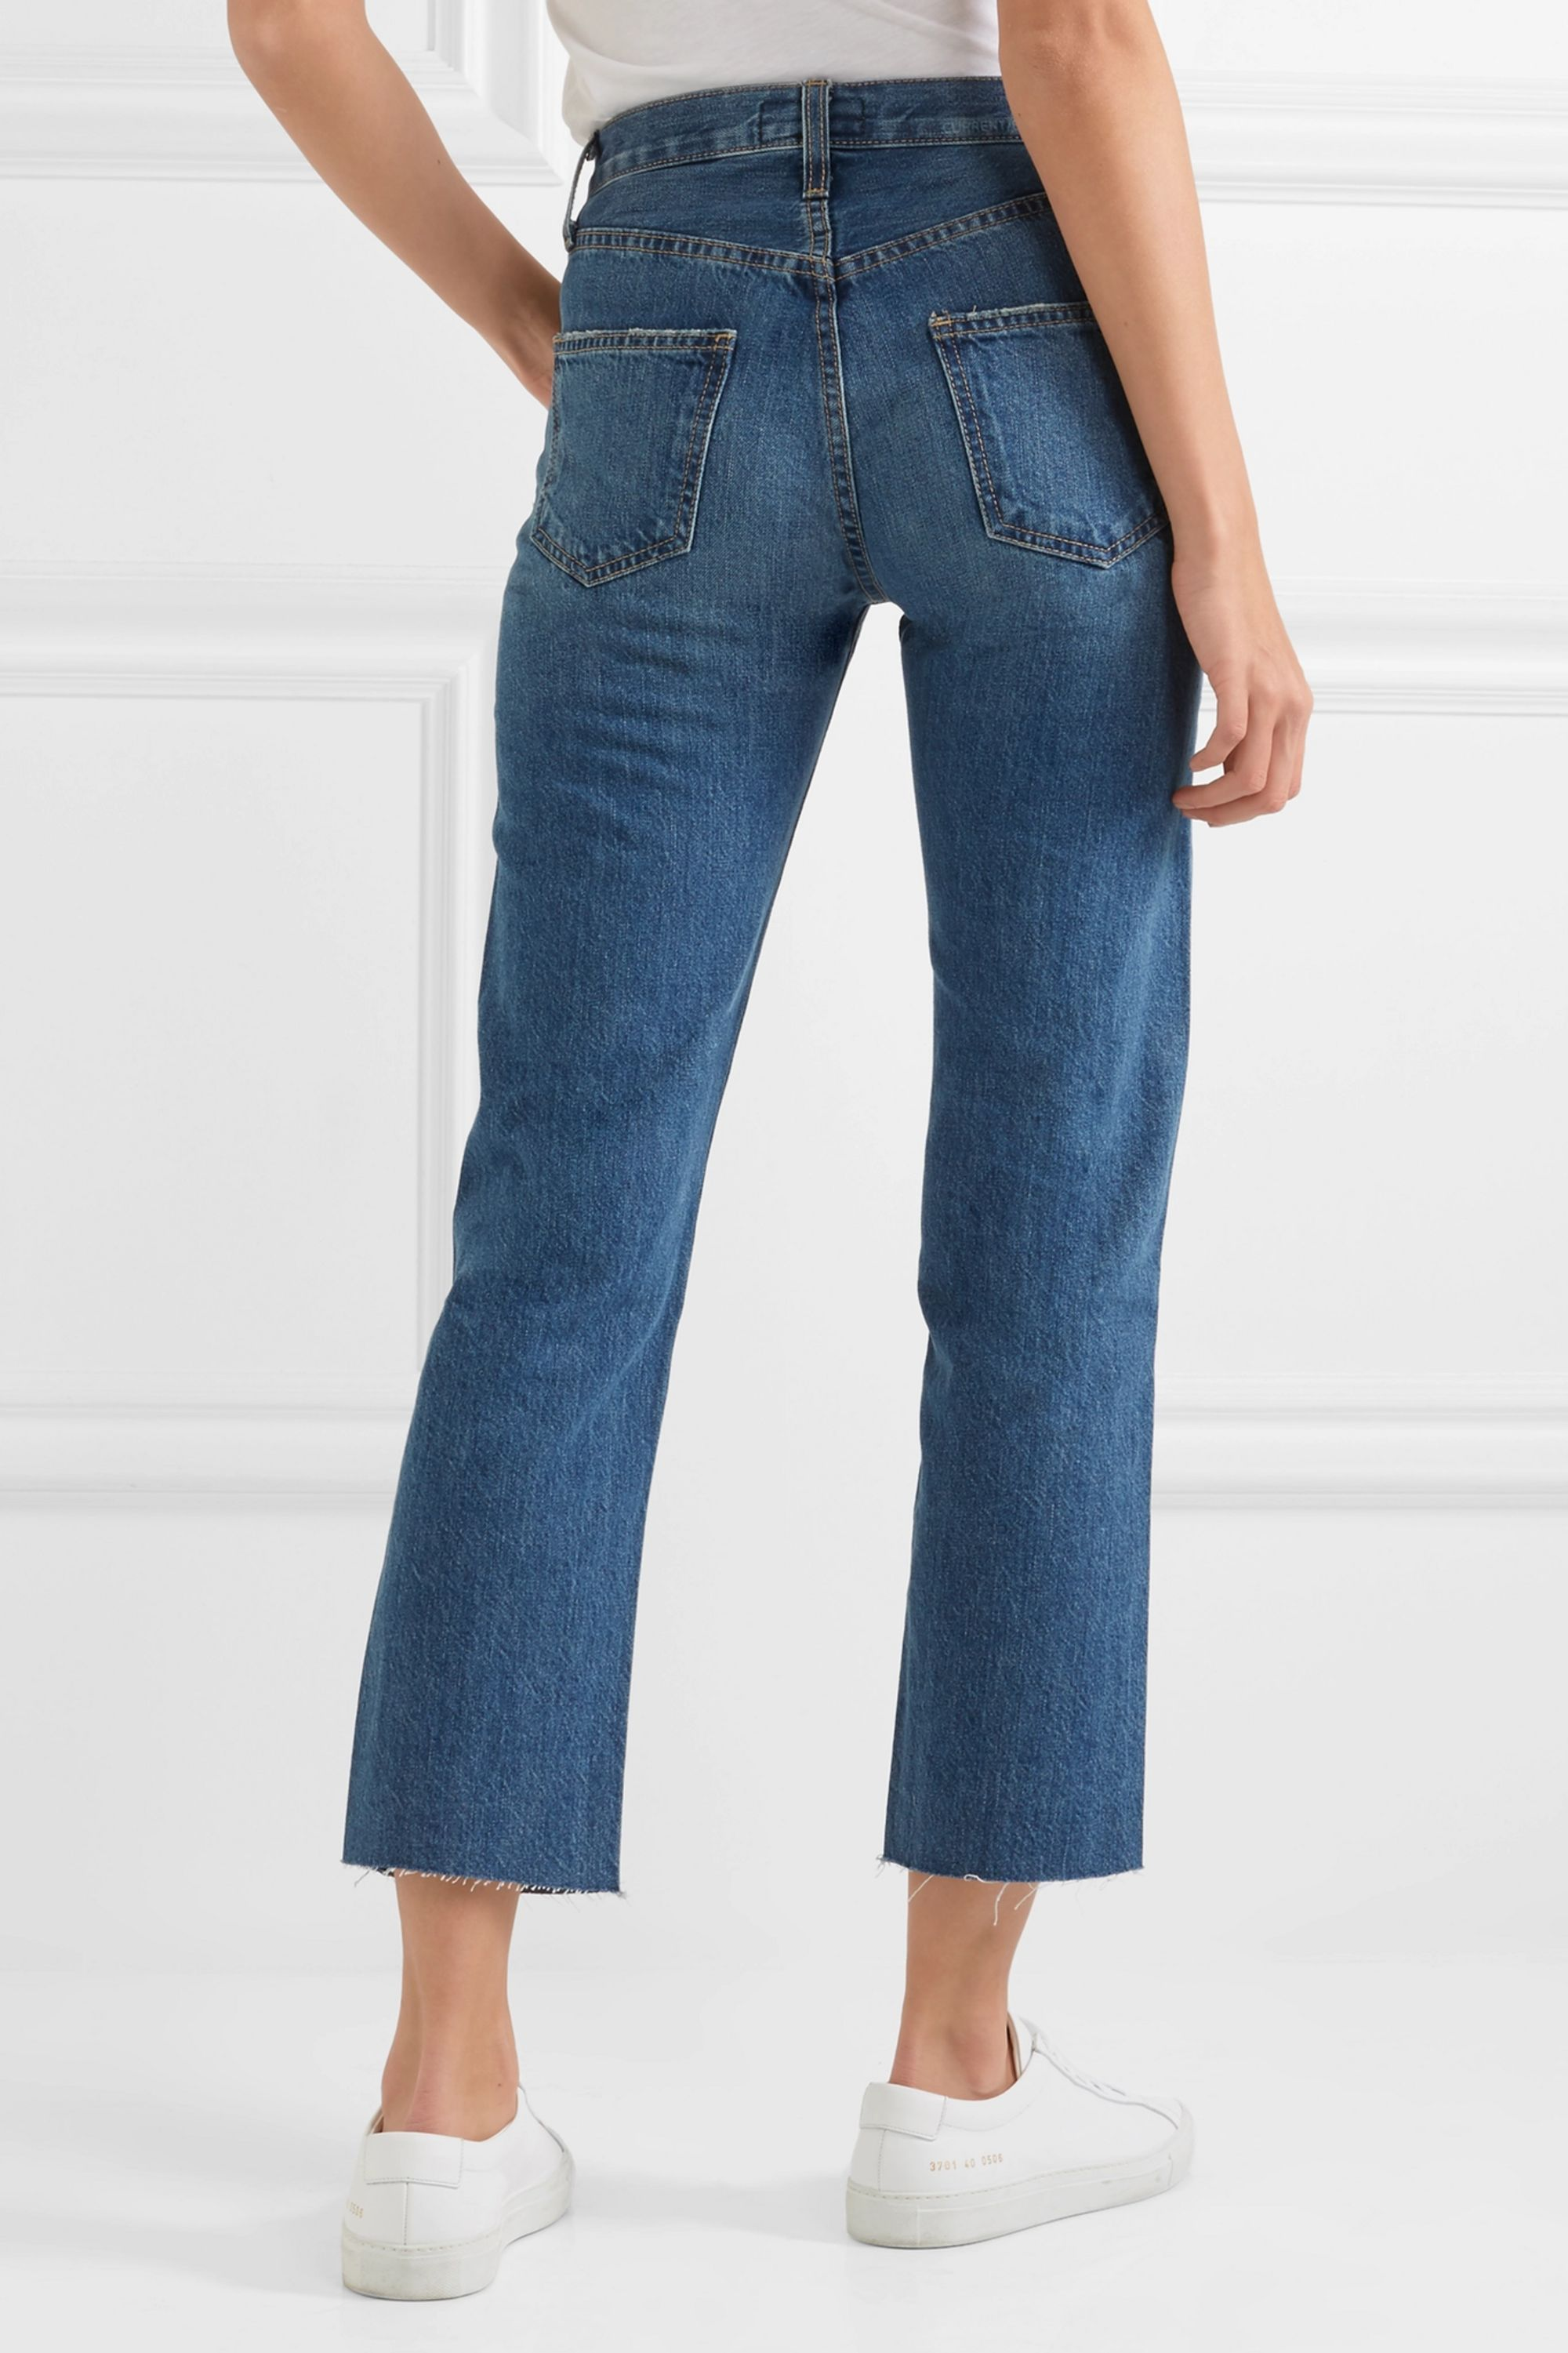 Current/Elliott The Original Straight cropped mid-rise jeans